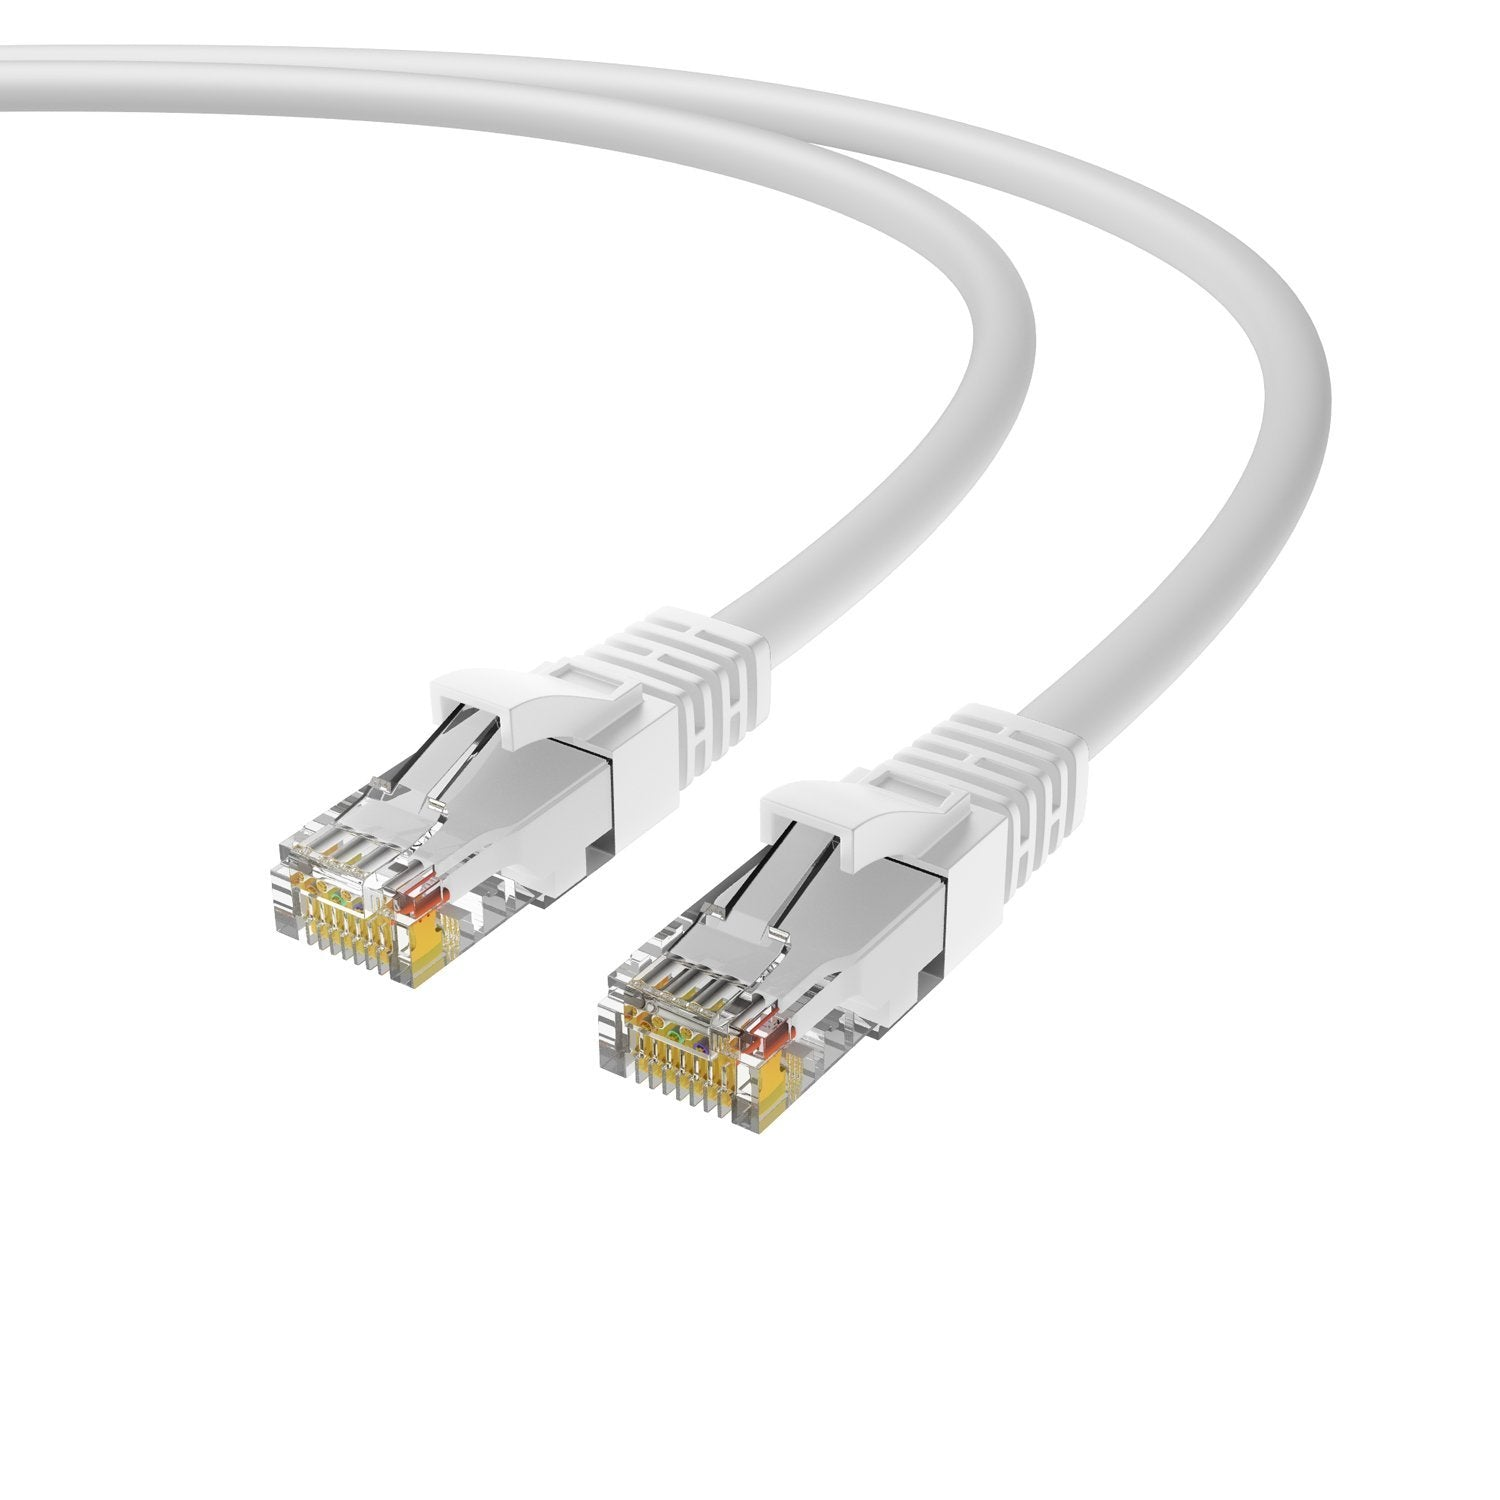 Ethernet Cable 7 Feet Karmashares Llc Leveraging Cryptocurrency Cables Cat5e Gray Patch Snagless Molded Boot 75 Foot Cat6 Cord 5 Pack Internet Rj45 Gigabit Cat6e